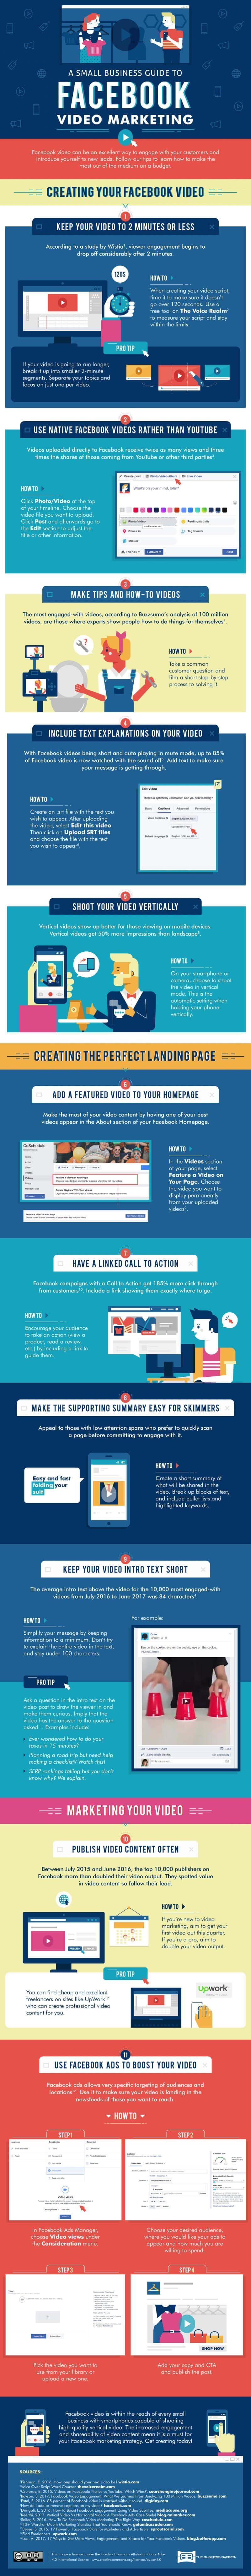 A Small Business Guide to Facebook Video Marketing #infographic